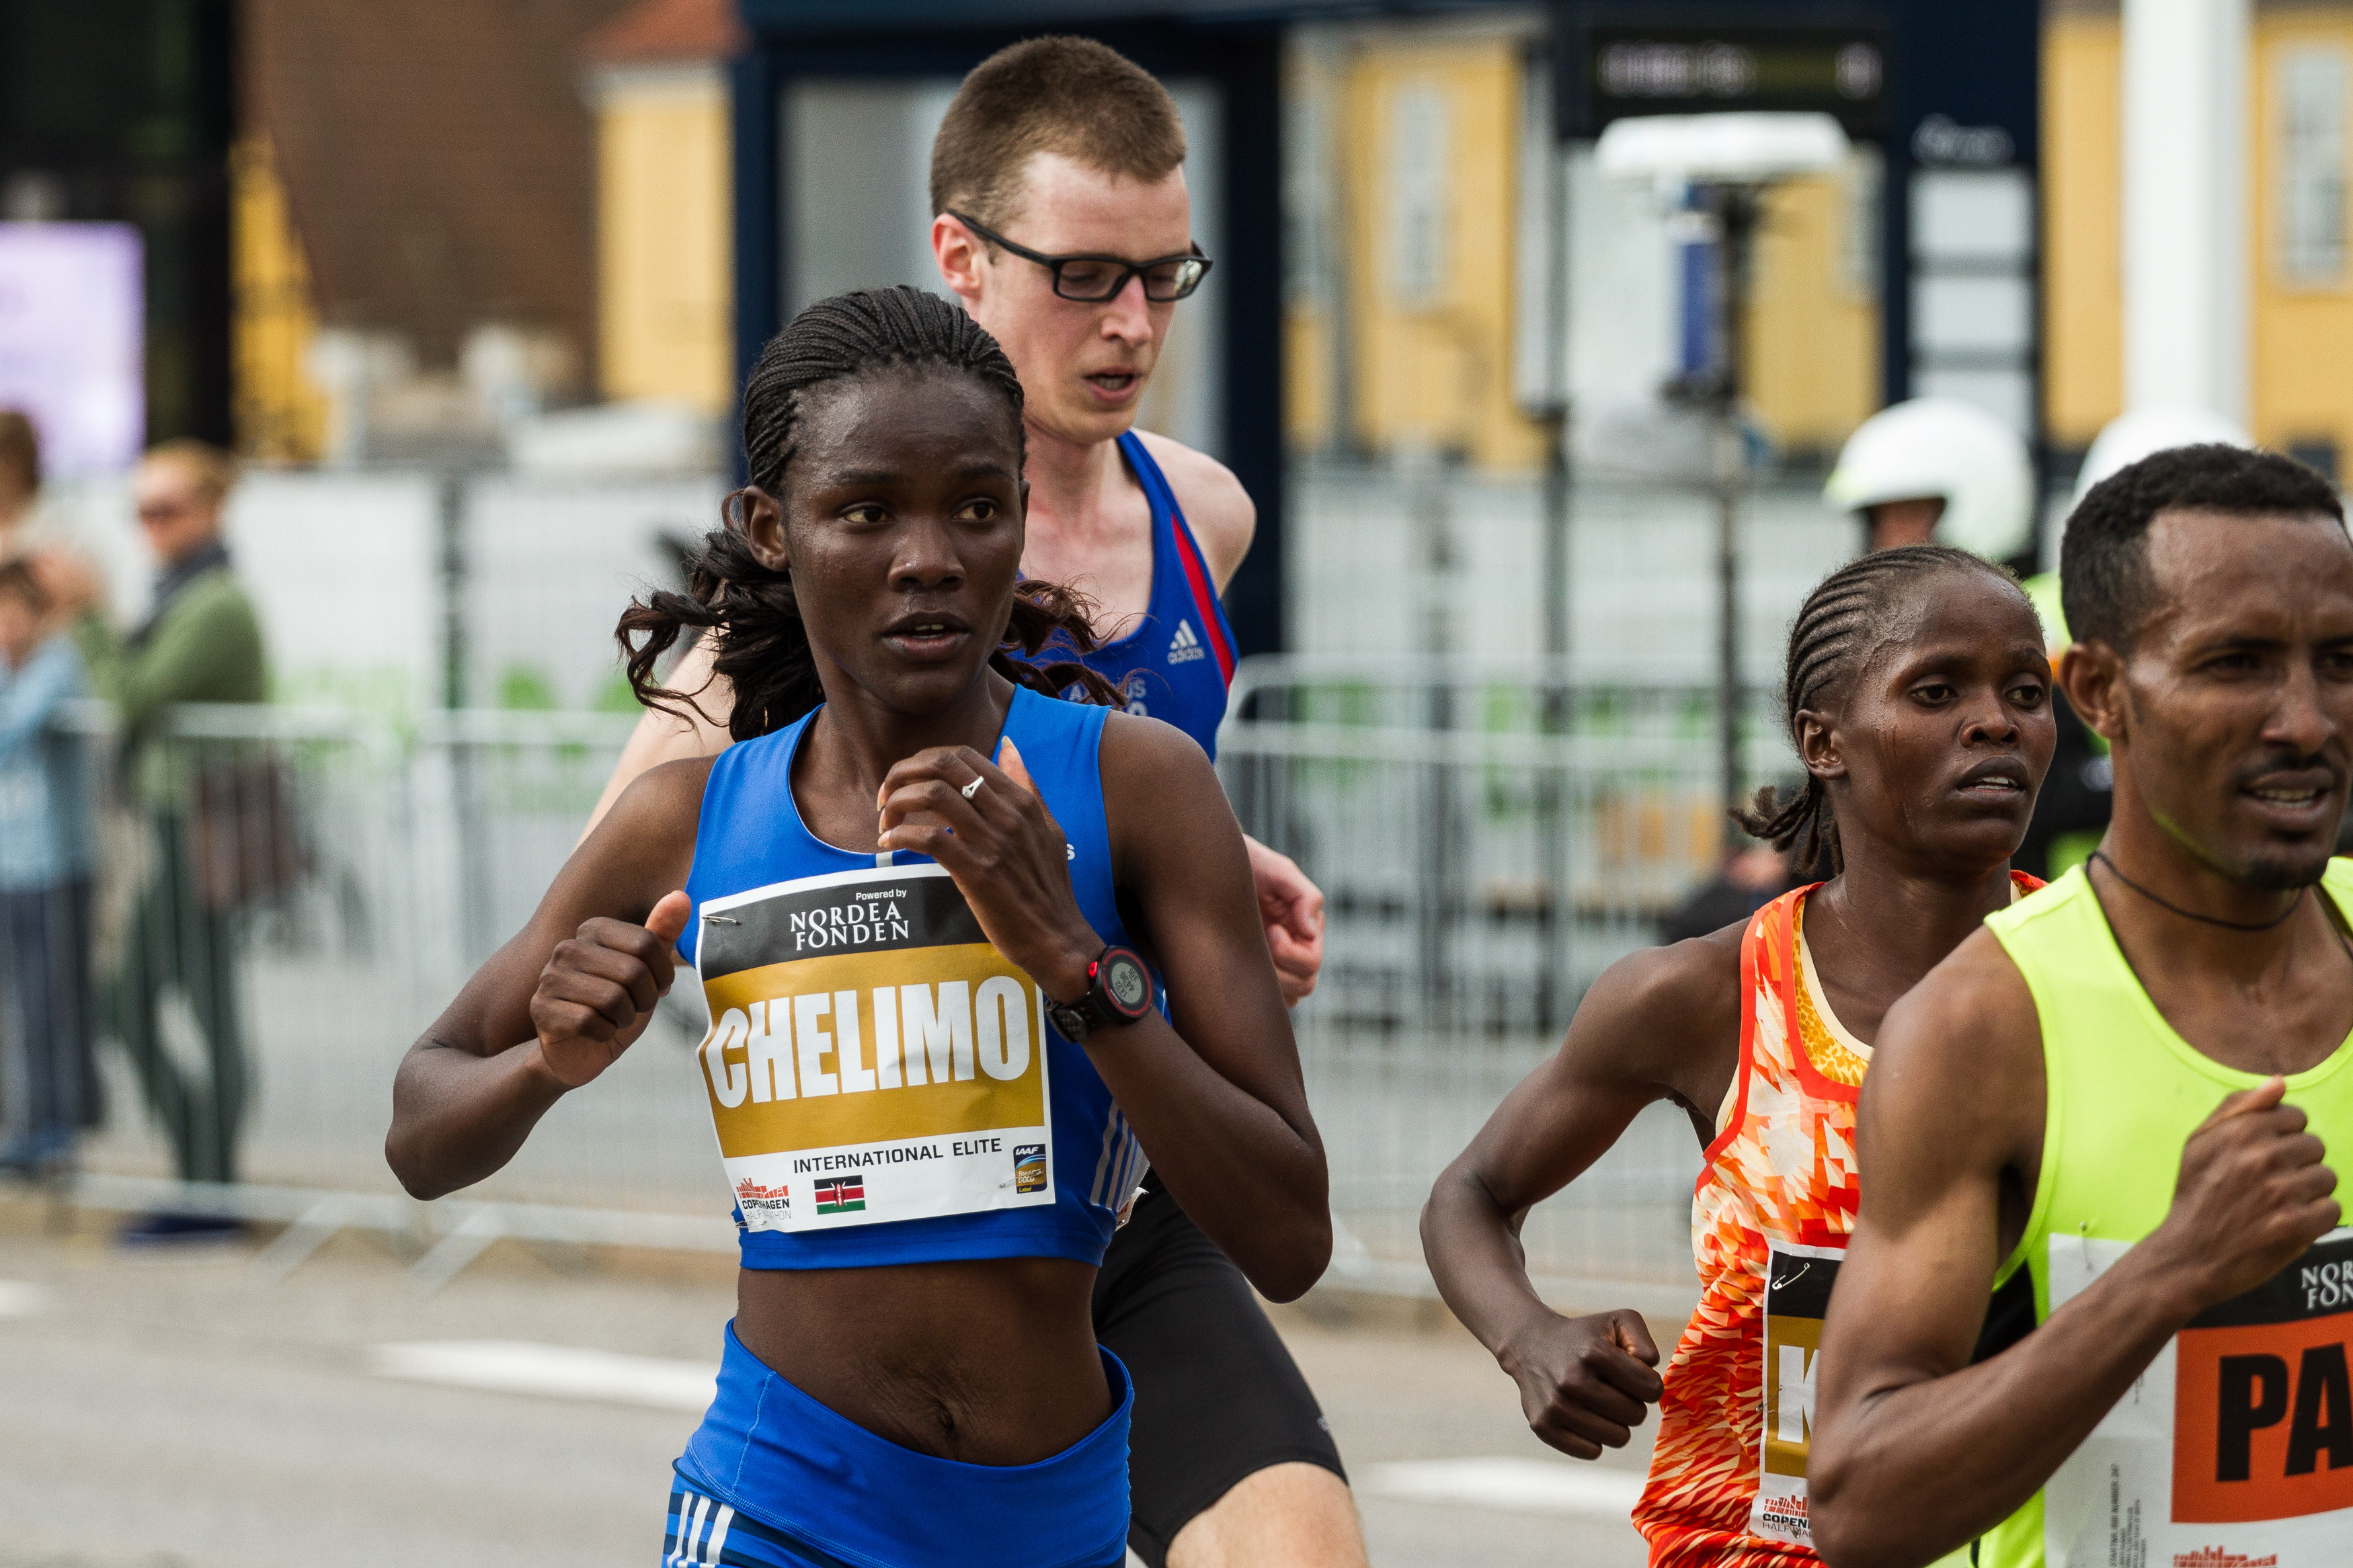 Kenya's Joan Melly Chelimo is upbeat ahead of her debut in the Tokyo Marathon Sunday